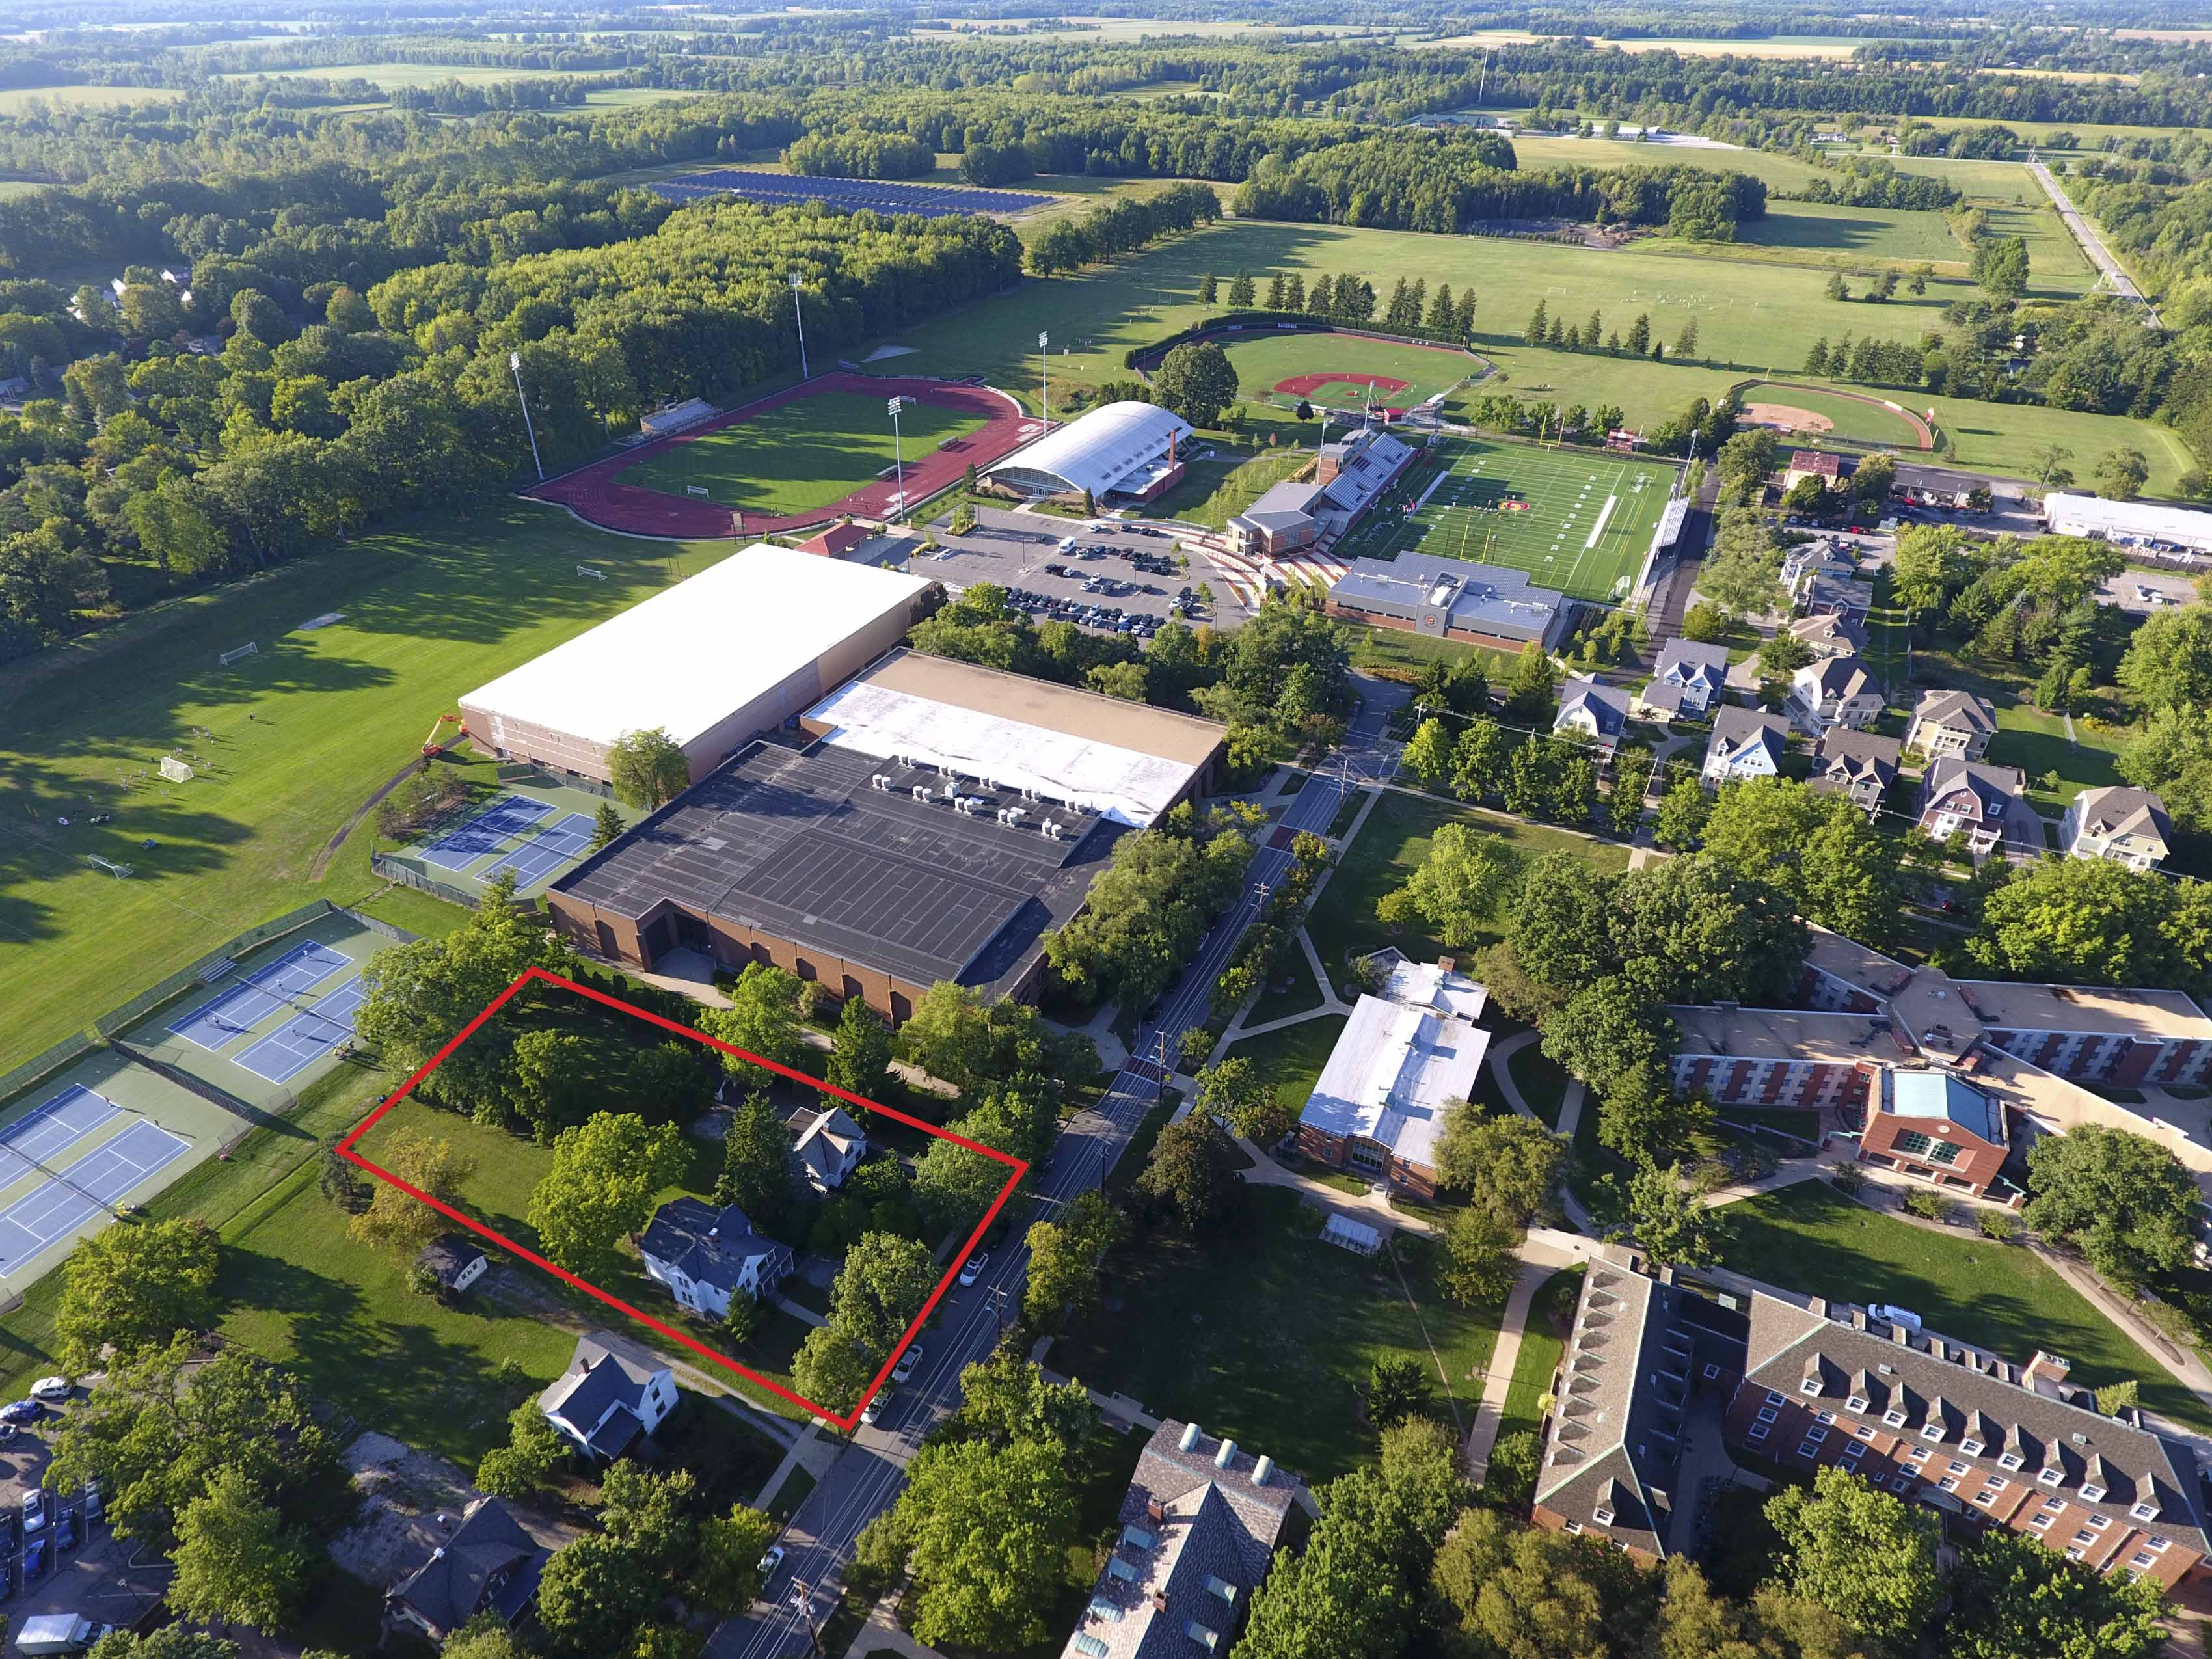 An aerial view of Philips gym and the surrounding area. The red box roughly delineates the location of the gym's planned expansion.